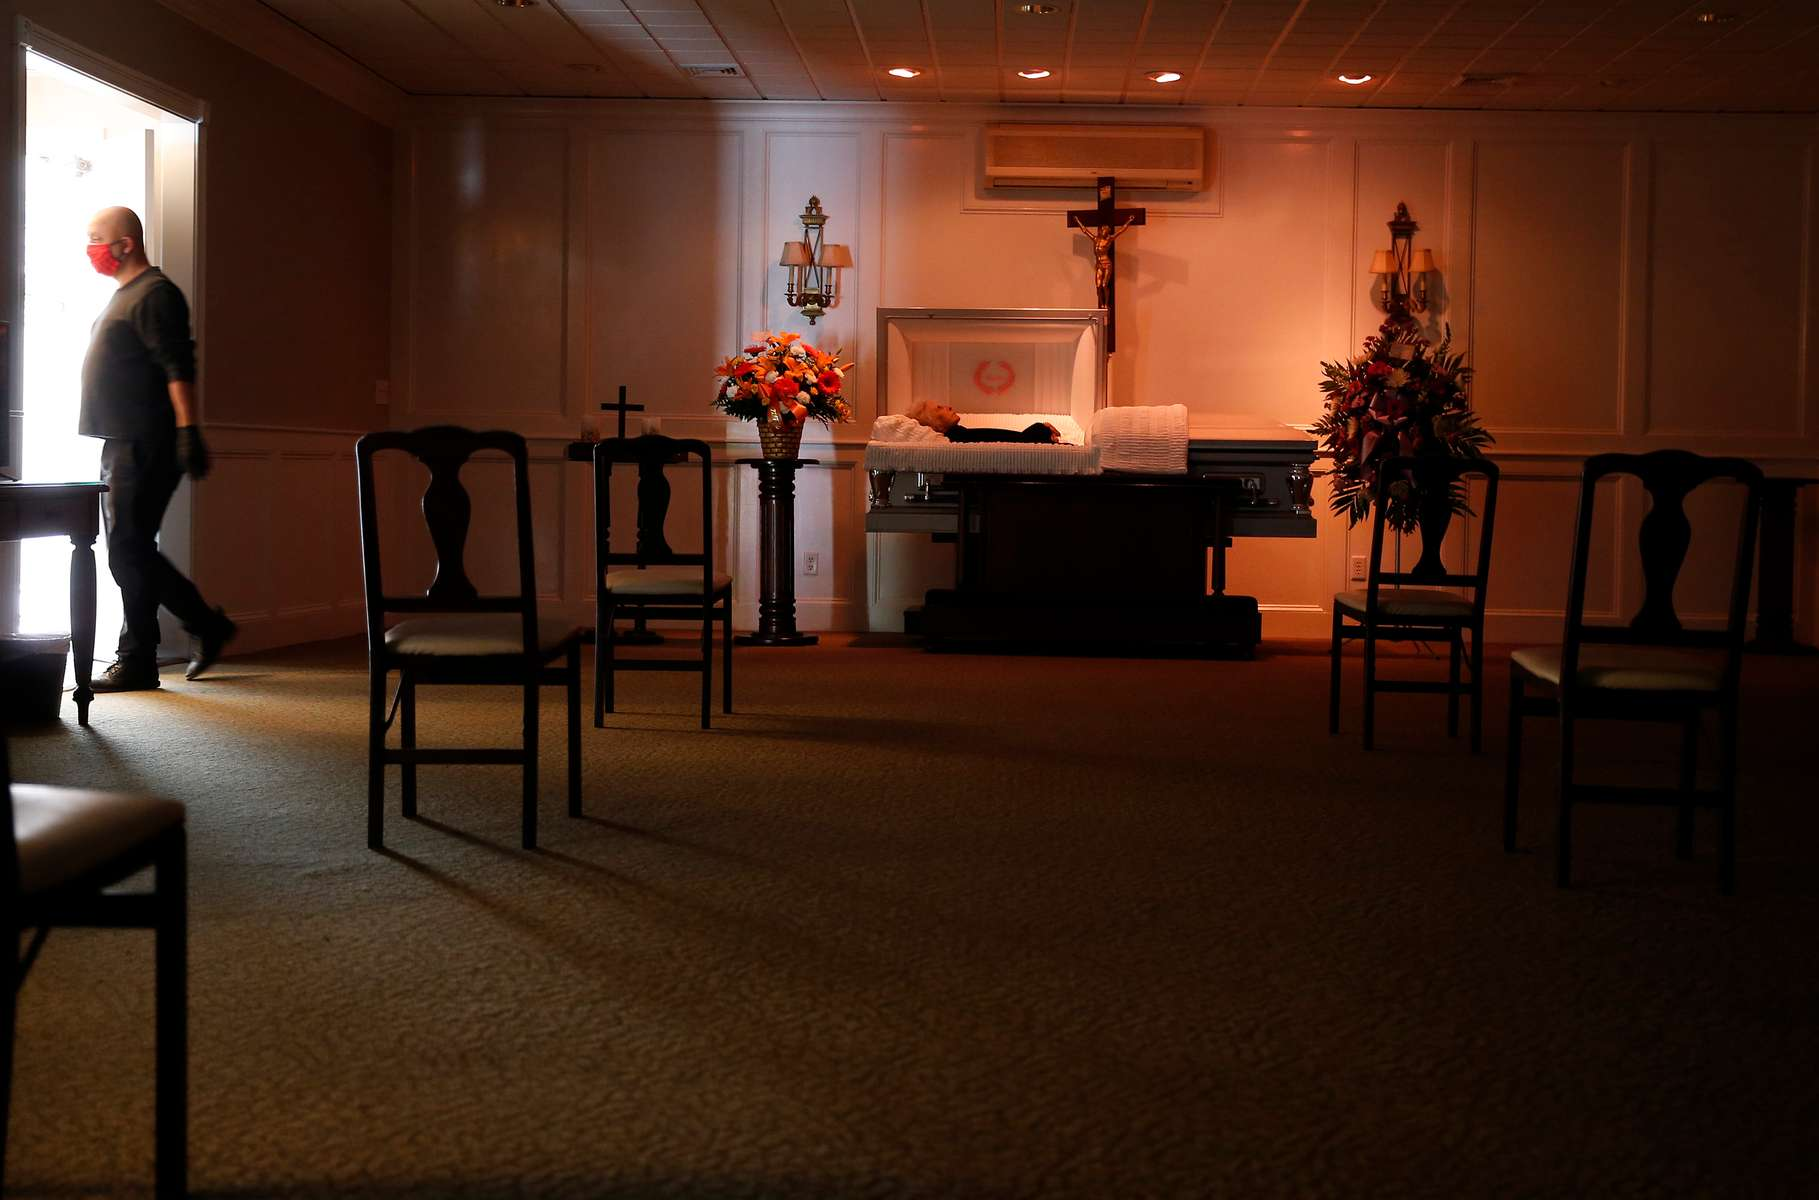 East Boston, MA - 4/28/20 - Chairs are arranged in a manner to allow for social distancing to protect against the spread of coronavirus or COVID-19 as a worker at Ruggiero Family Memorial Home in East Boston sets up for a visitation. (Jessica Rinaldi/Globe Staff)